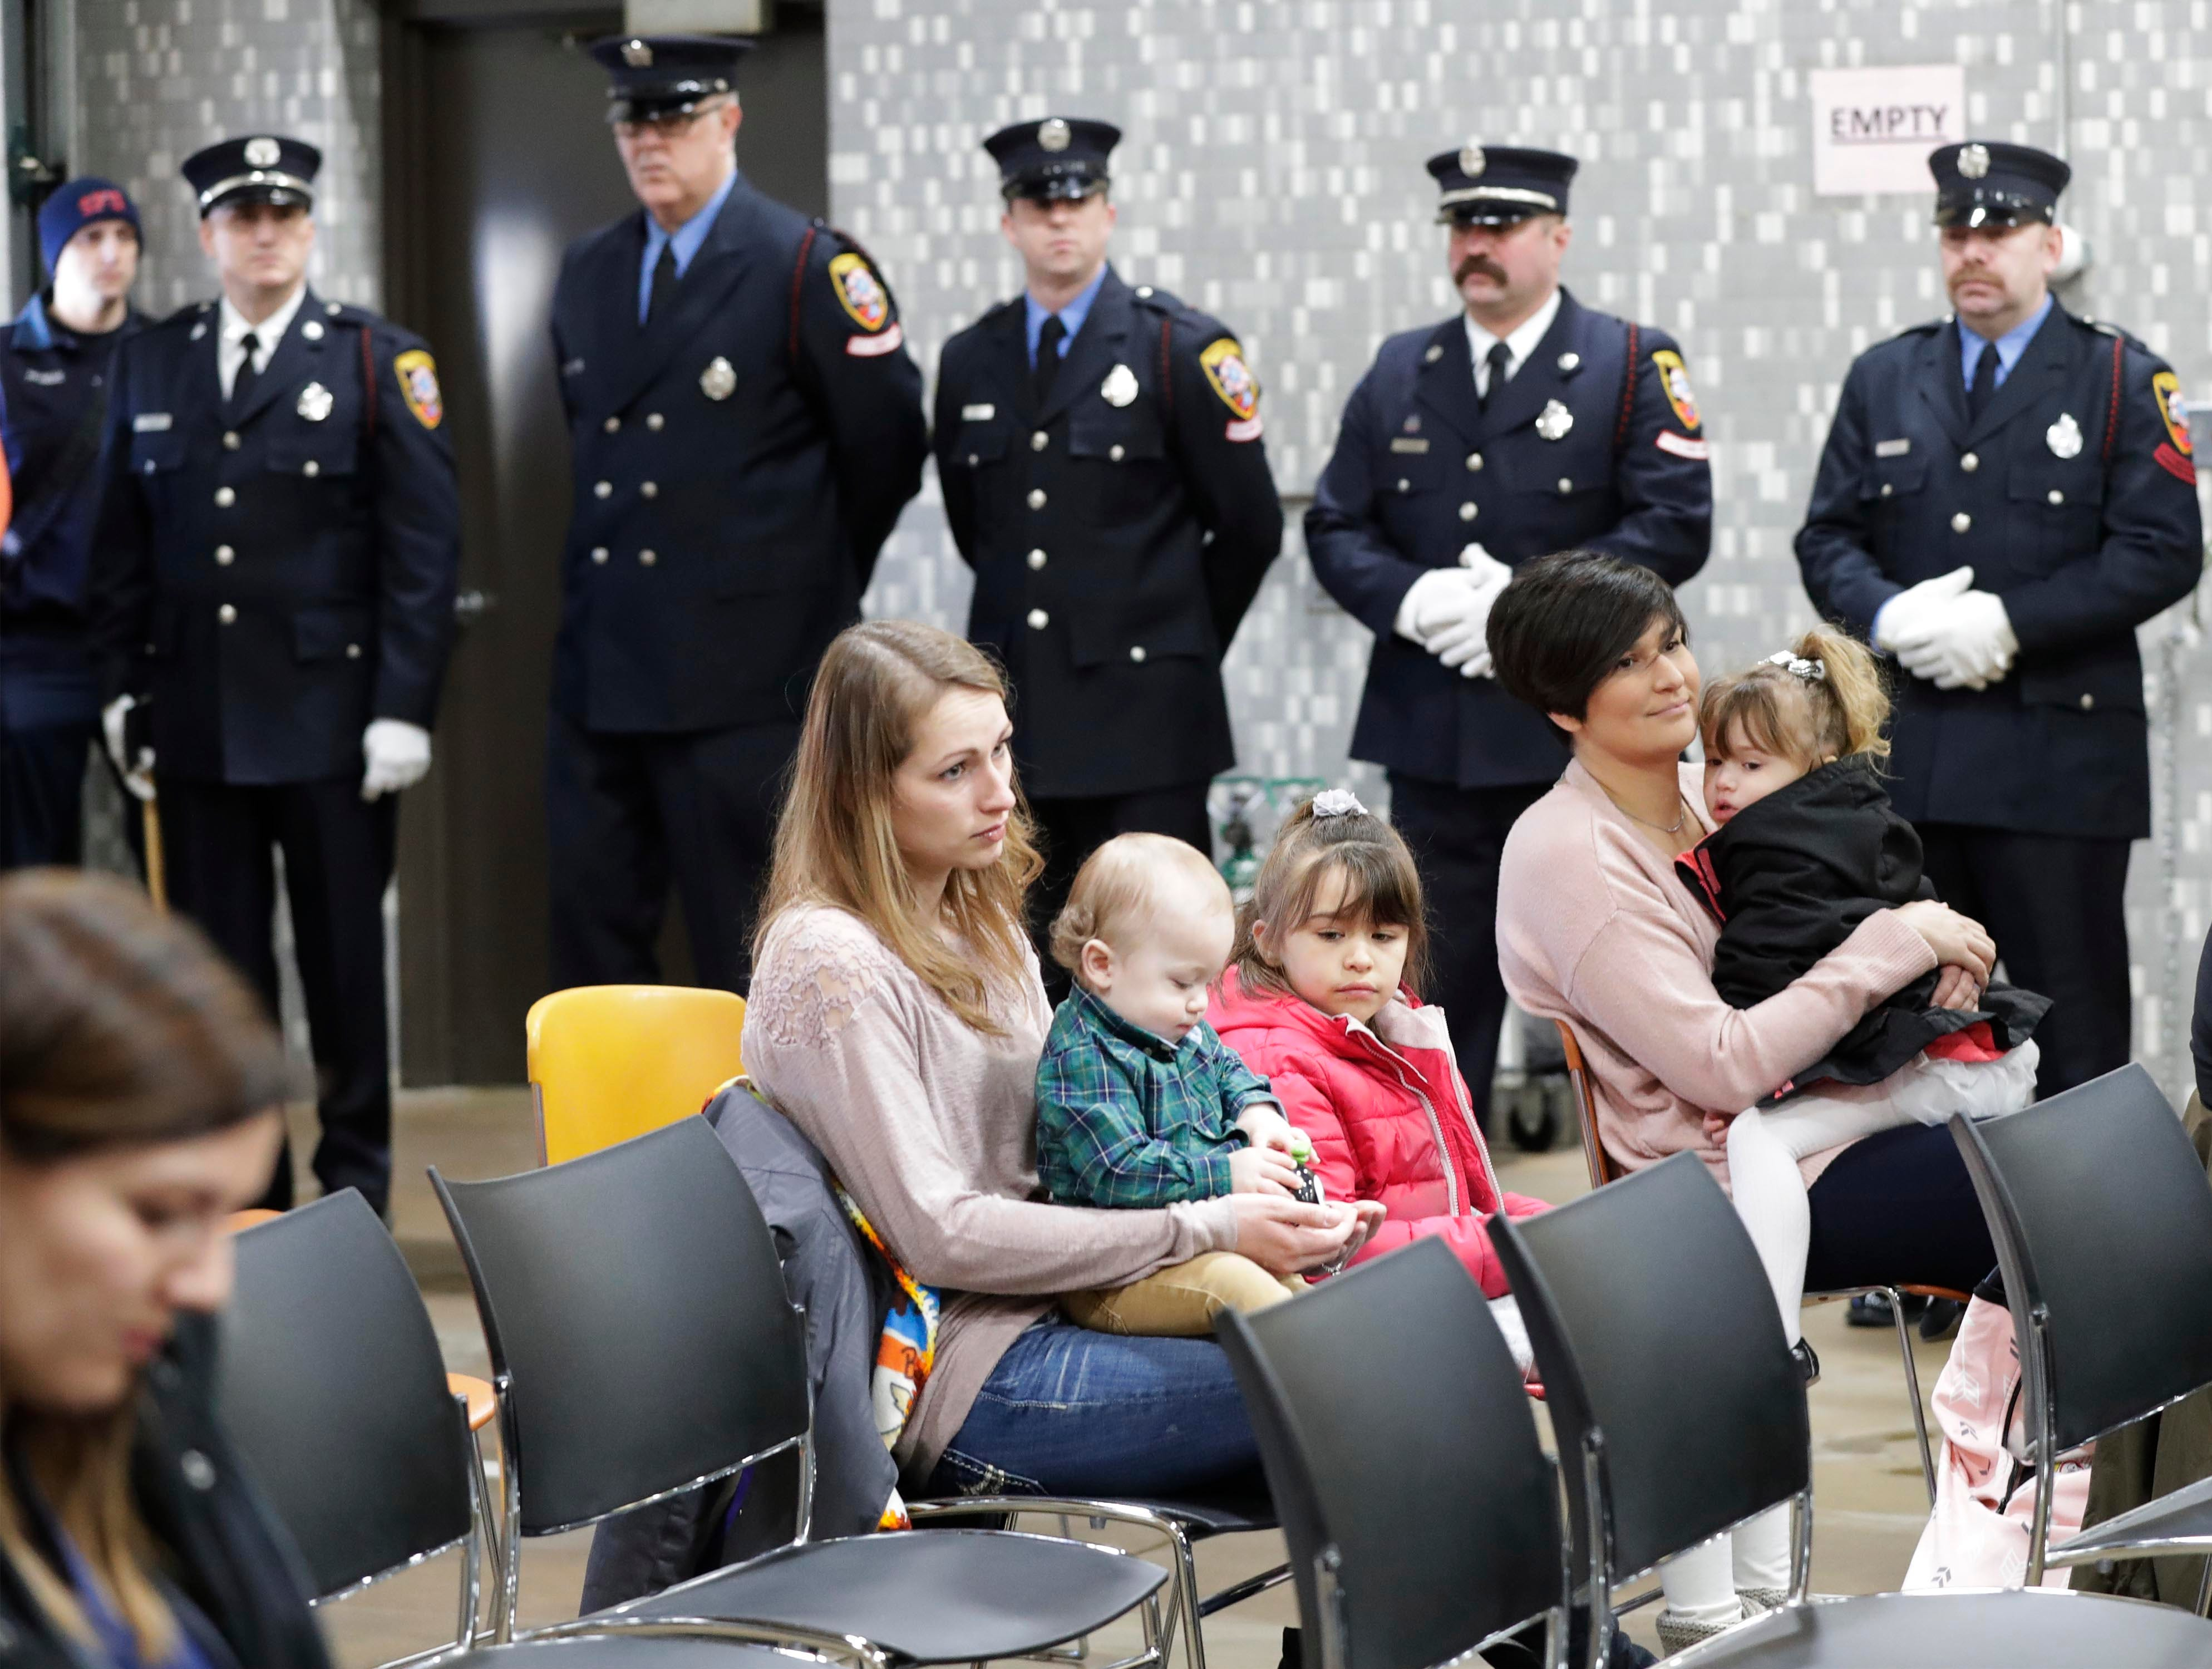 The audience at the firefighter ceremony, Wednesday, February 21, 2019, in Sheboygan, Wis.